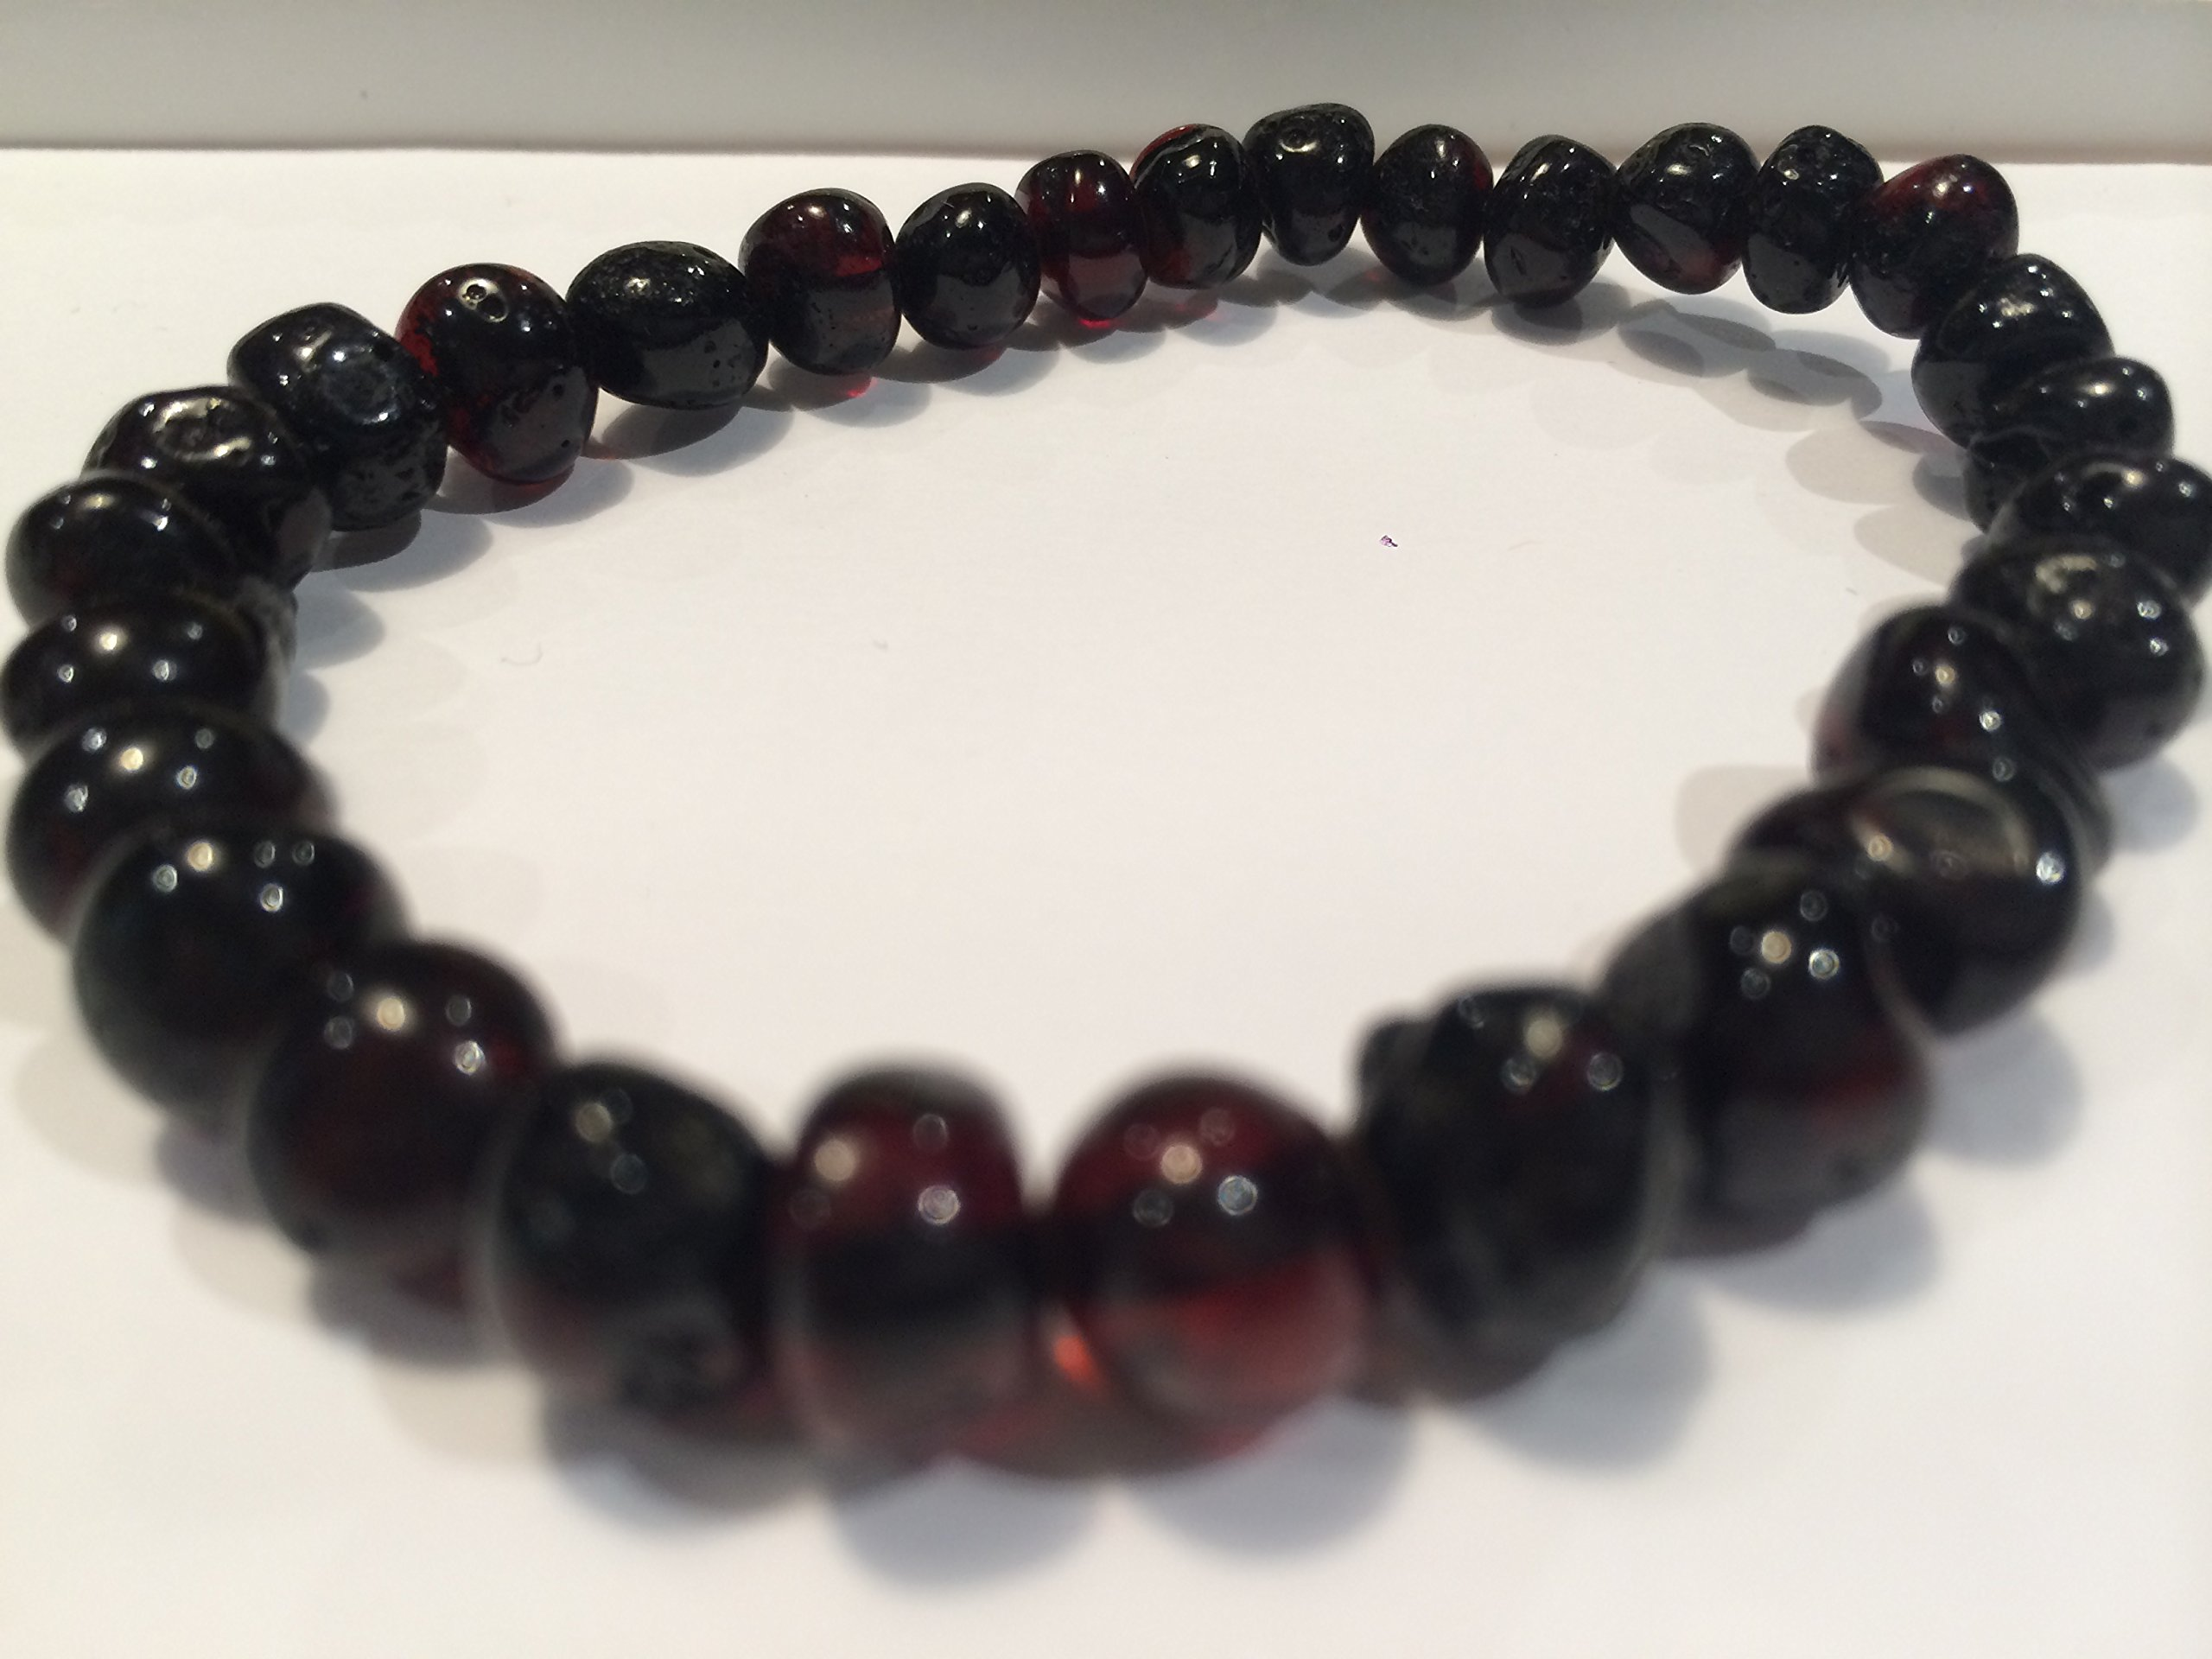 Healing Bracelet 8 inch arthritis carpal tunnel swelling headache Baltic Amber for Adults Polished Black Cherry Stretch Woman Certified (1 Pack)